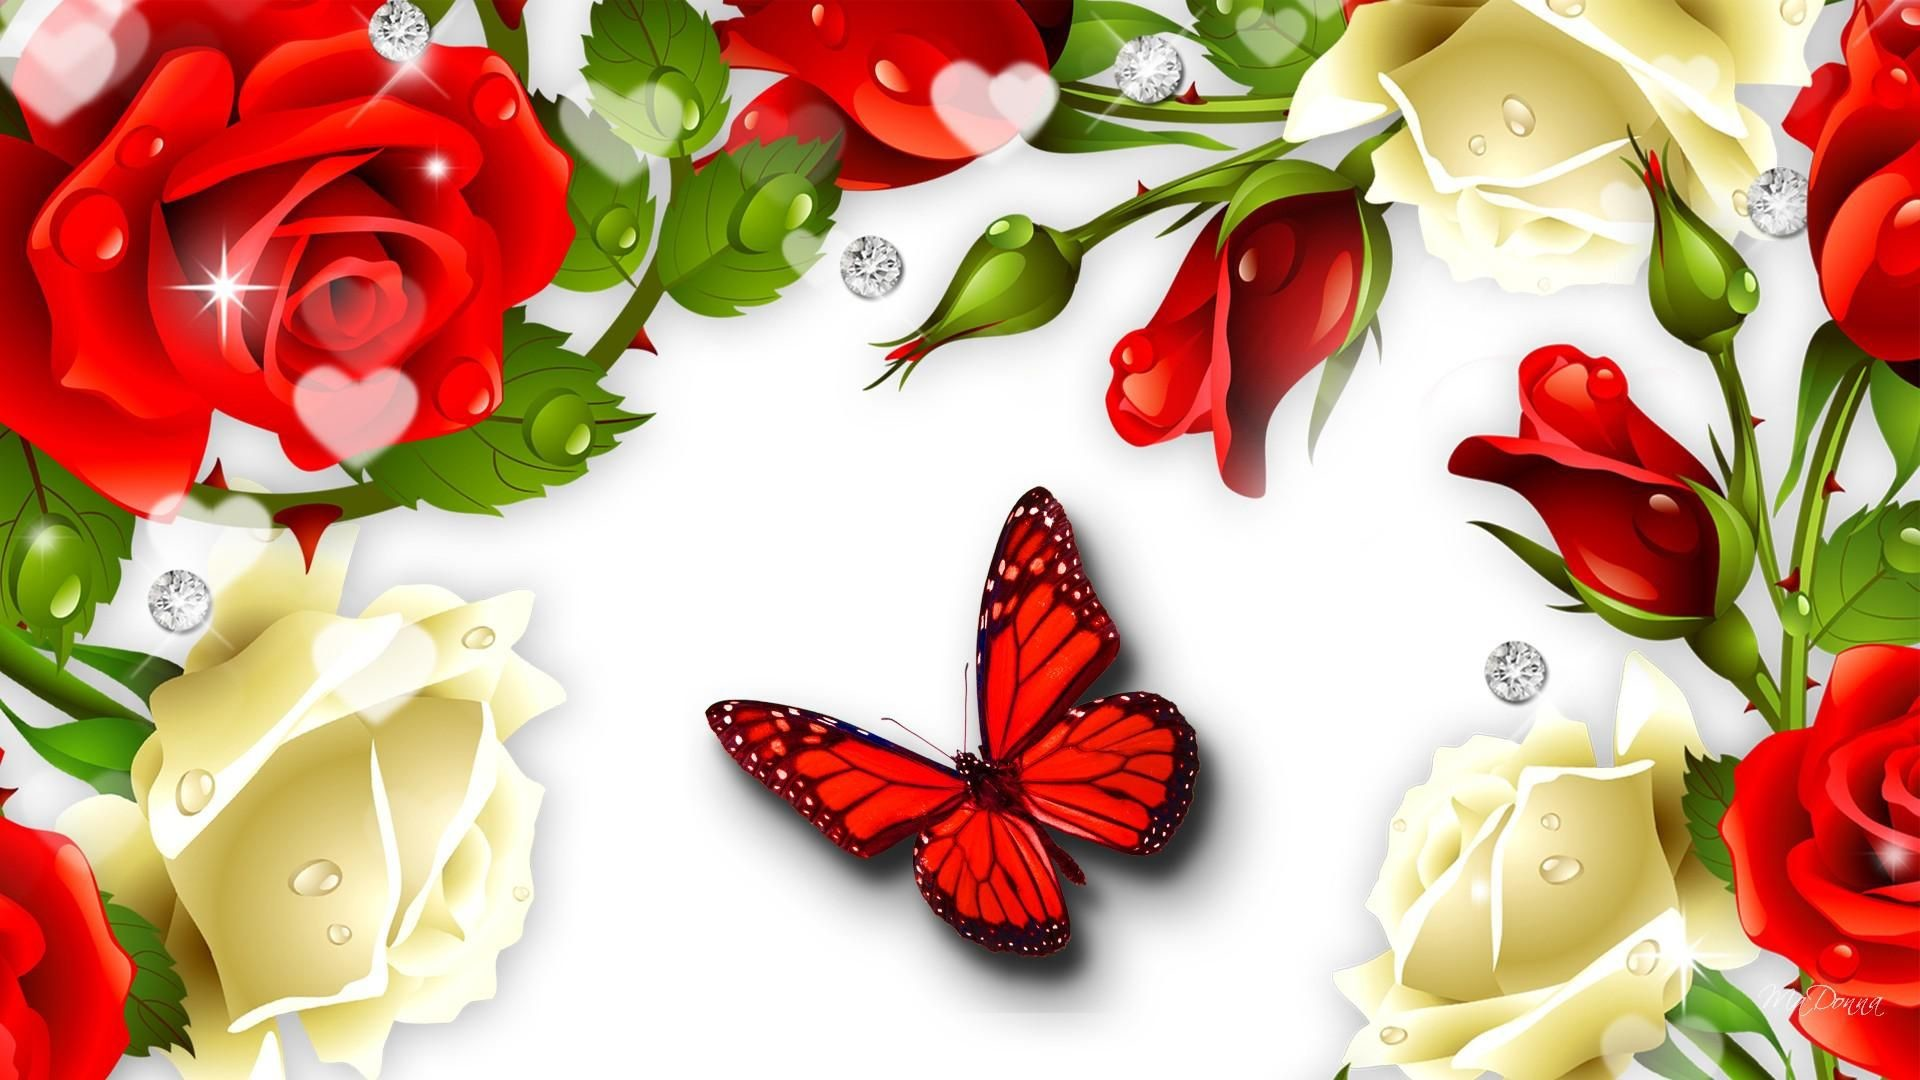 Res: 1920x1080, Red Butterfly Wallpaper   Red Butterfly Desktop Pics Wallpapers 7110 - HD…